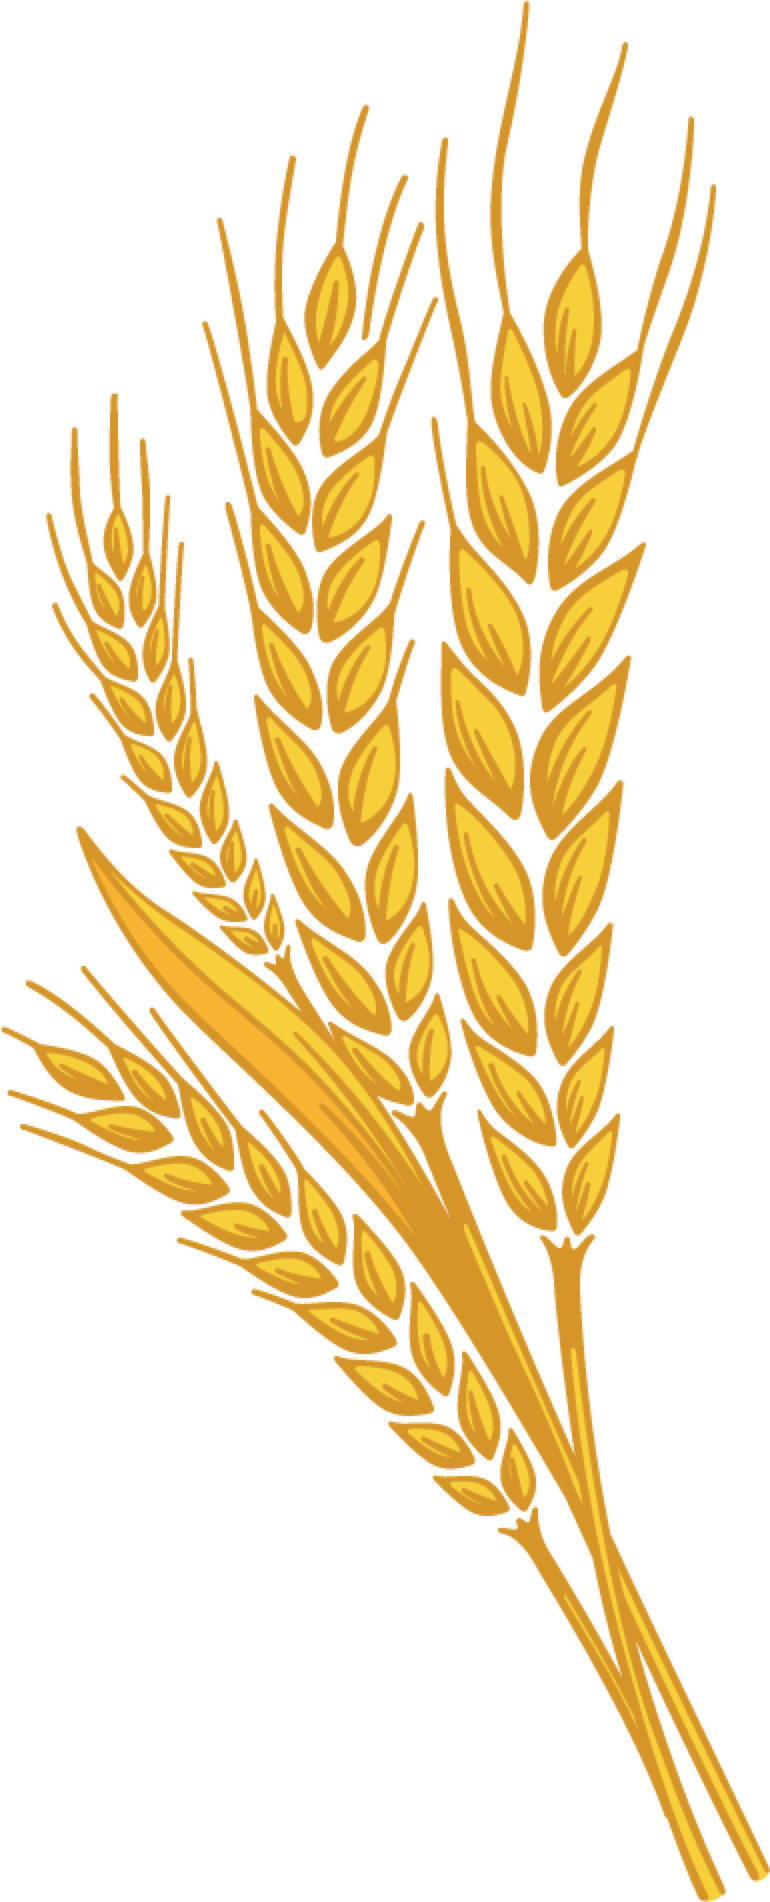 wheat png image purepng free transparent cc0 png image library